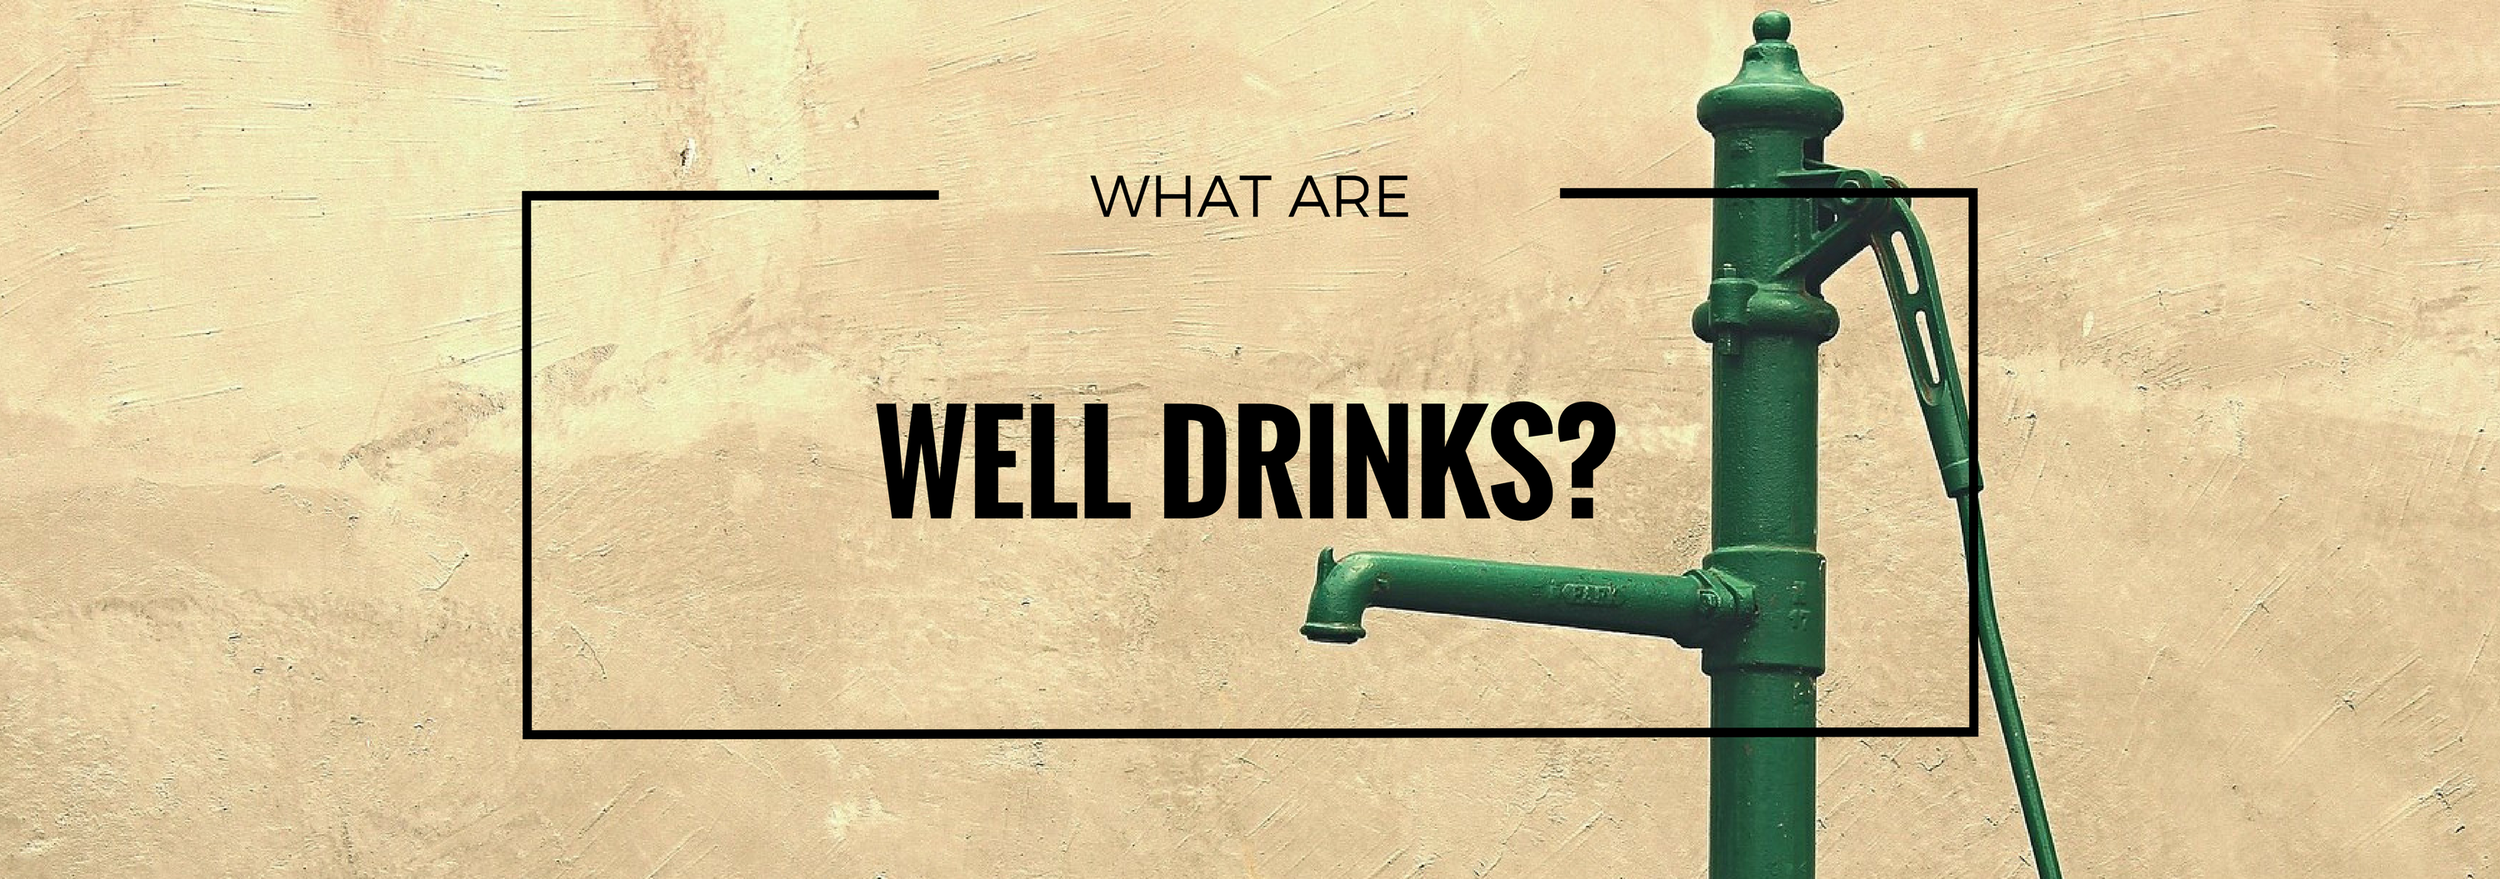 well-drinks1.png